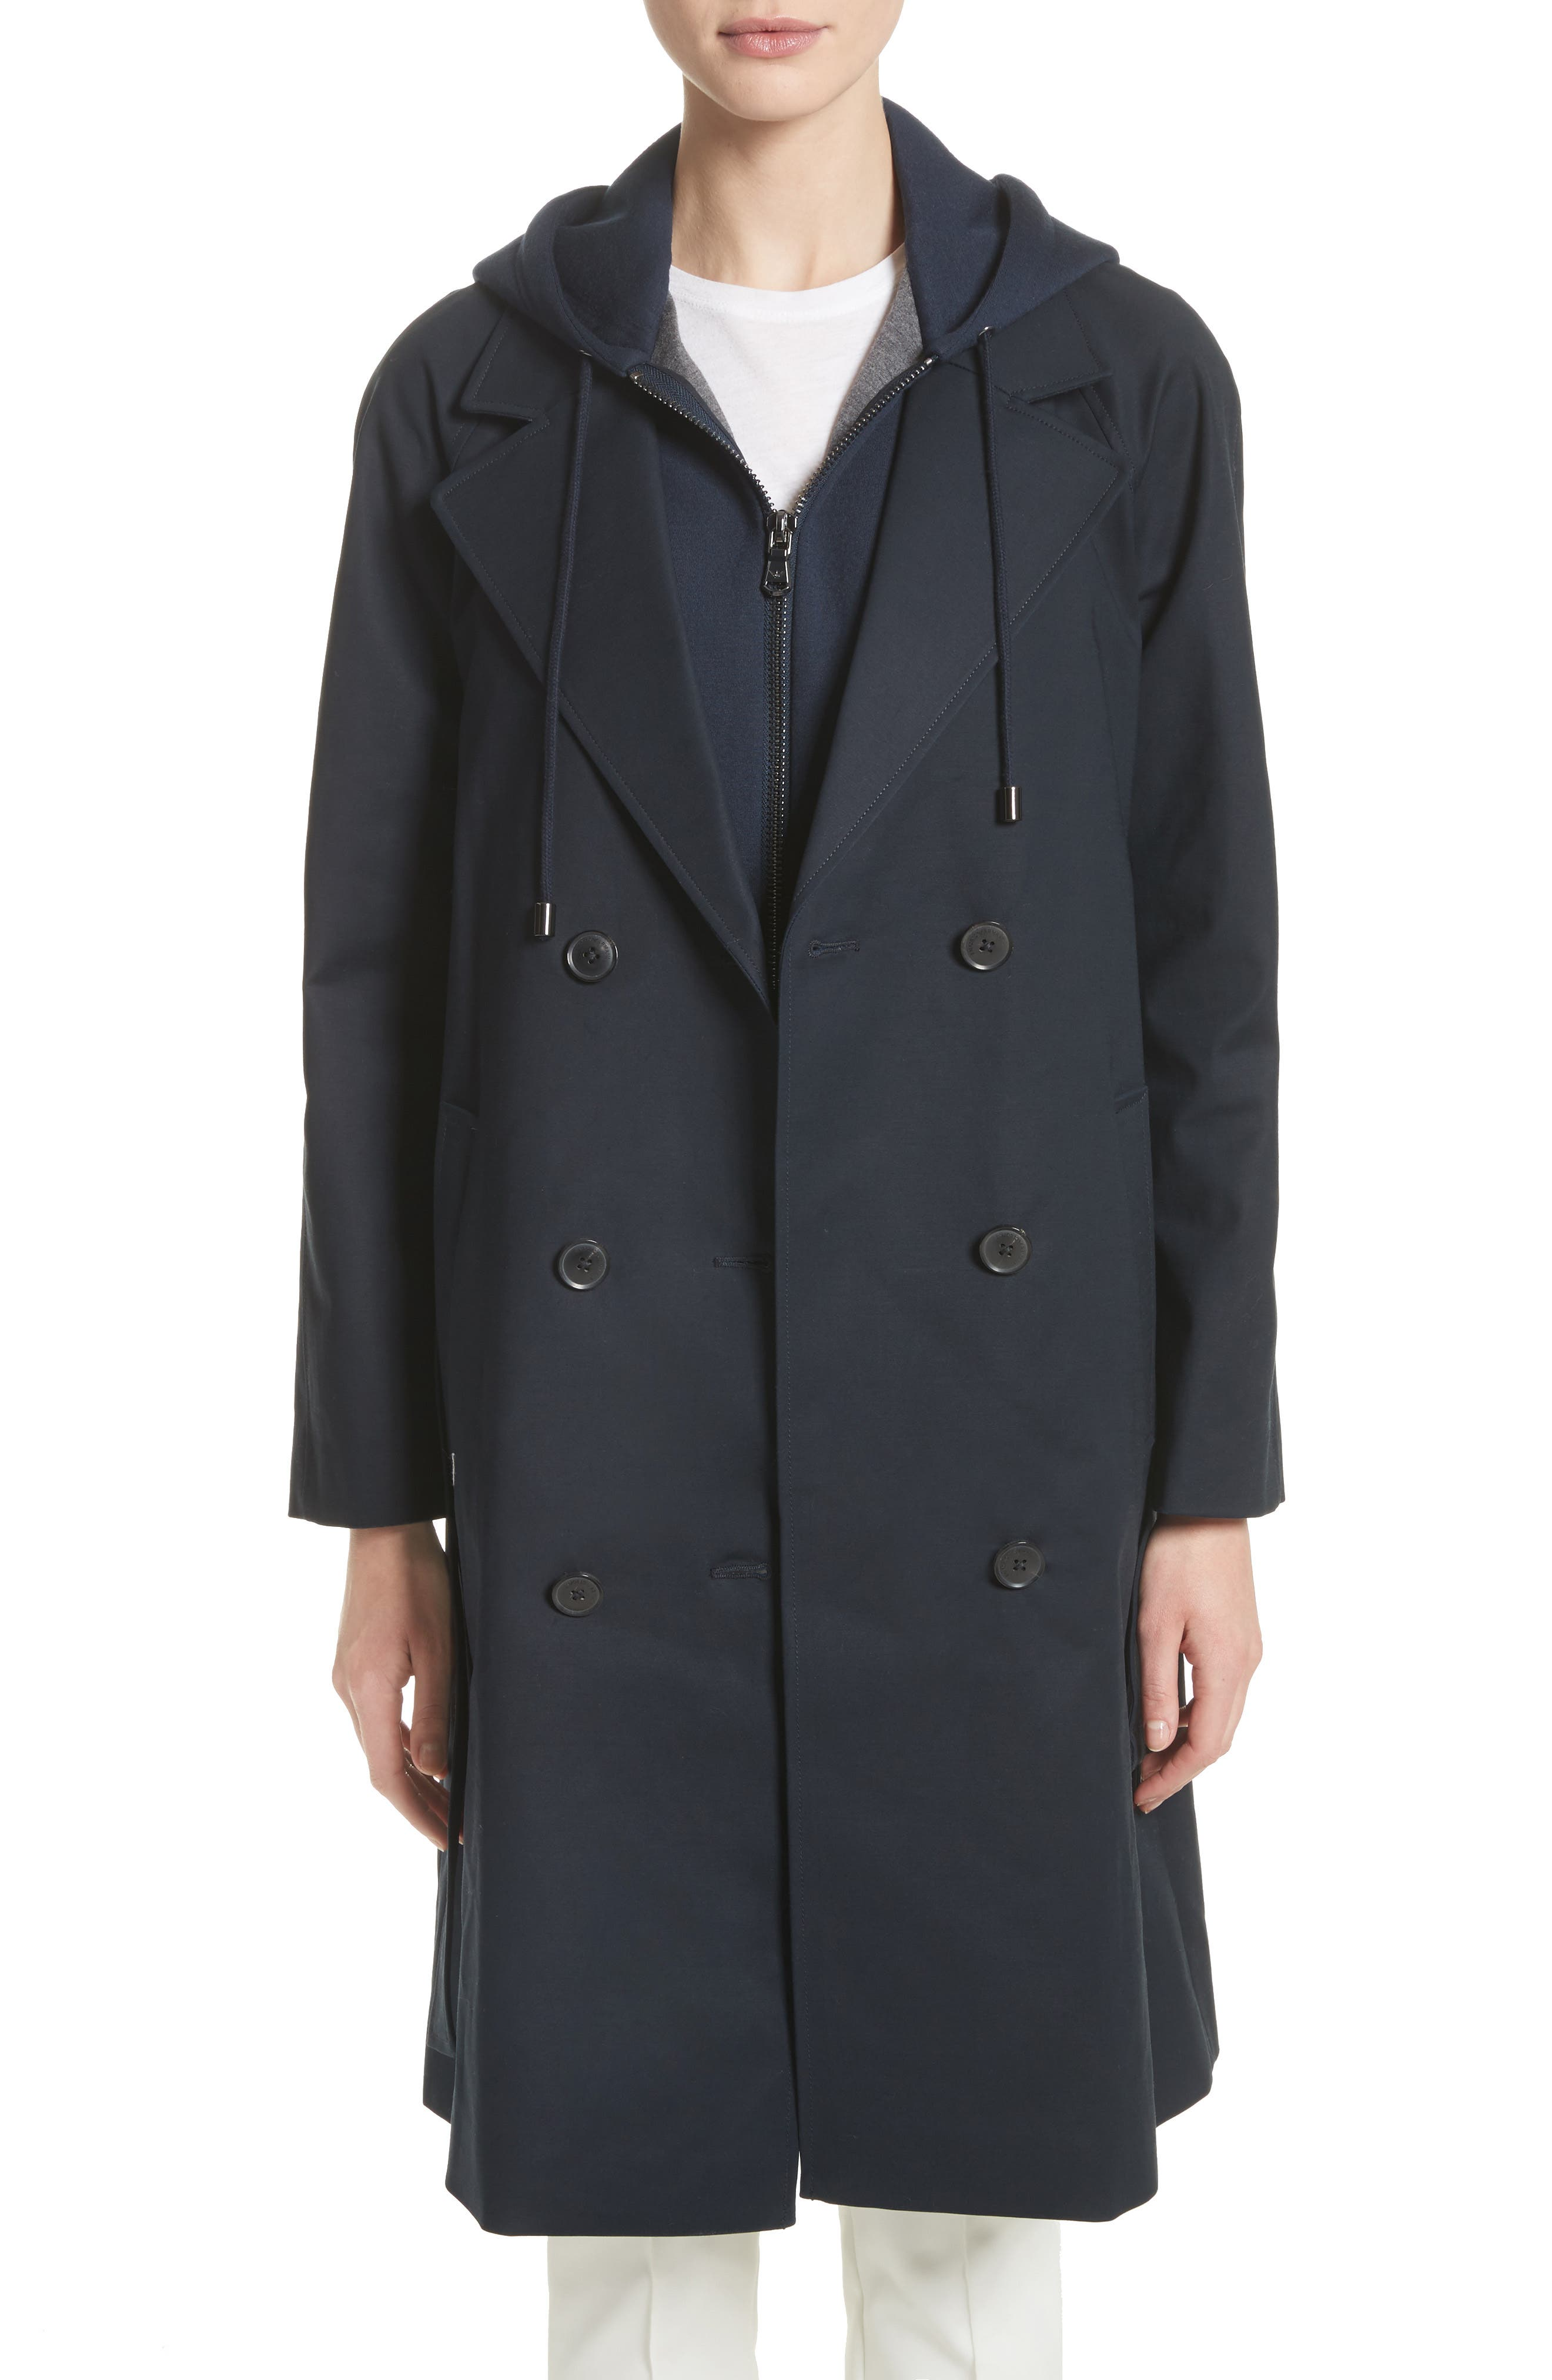 Main Image - Emporio Armani Double Breasted Cotton Blend Trench Coat with Removable Hoodie Inset